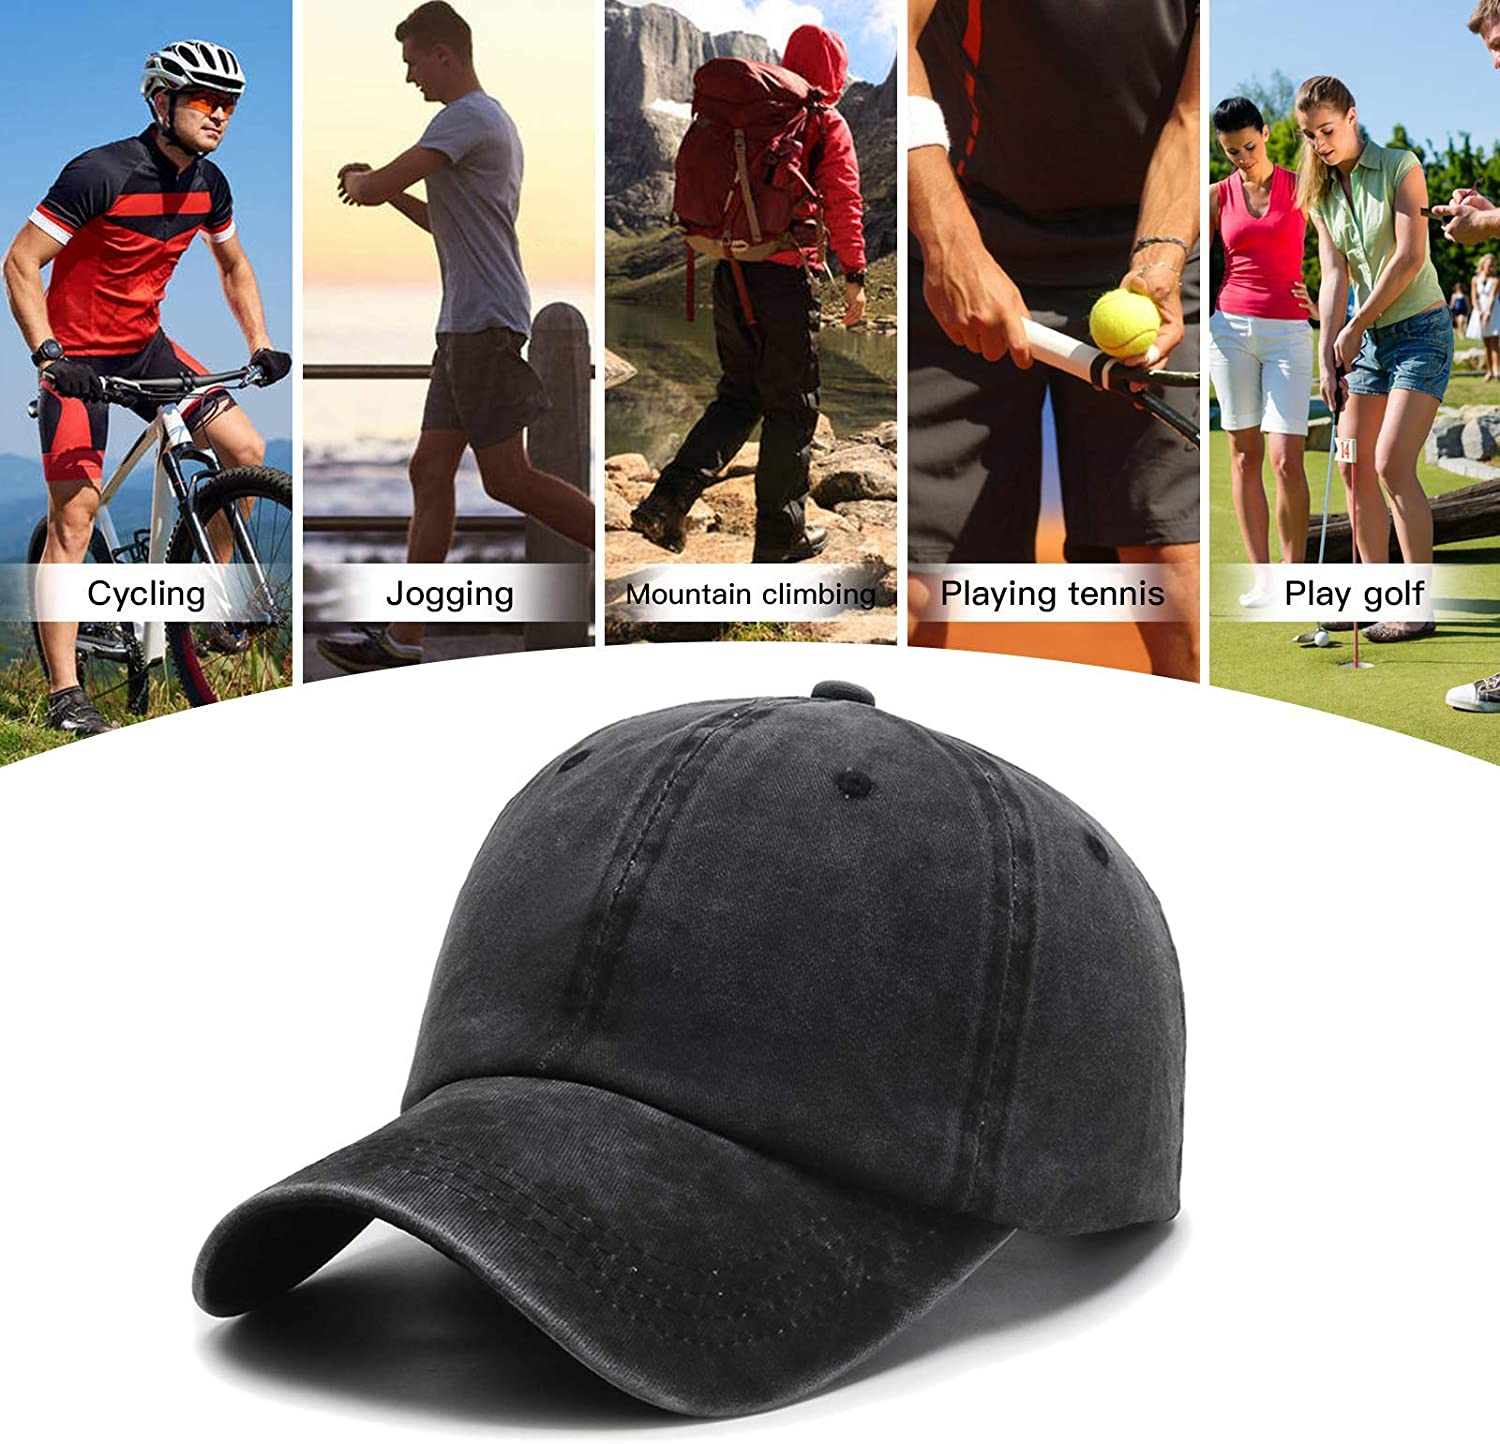 Retired 2021 Not My Problem Anymore 1 Hat,Retirement Gift Baseball Cap for Man Woman Black